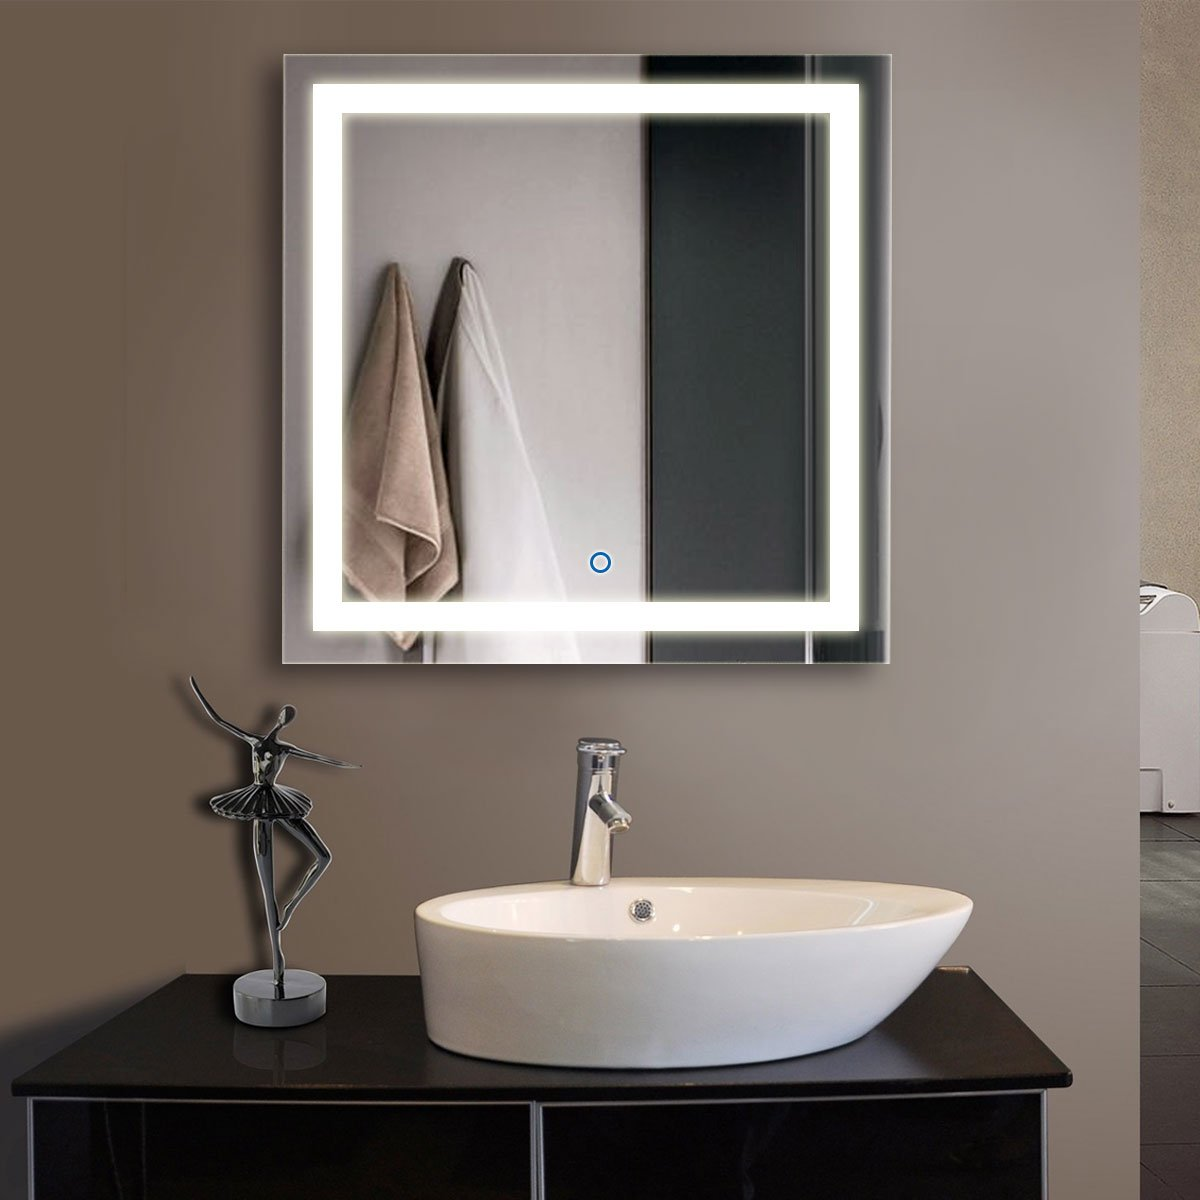 DECORAPORT 32 Inch 32 Inch Square Horizontal and Vertical LED Wall Mounted Lighted Vanity Bathroom Silvered Mirror with Touch Button (A-CK010-F)